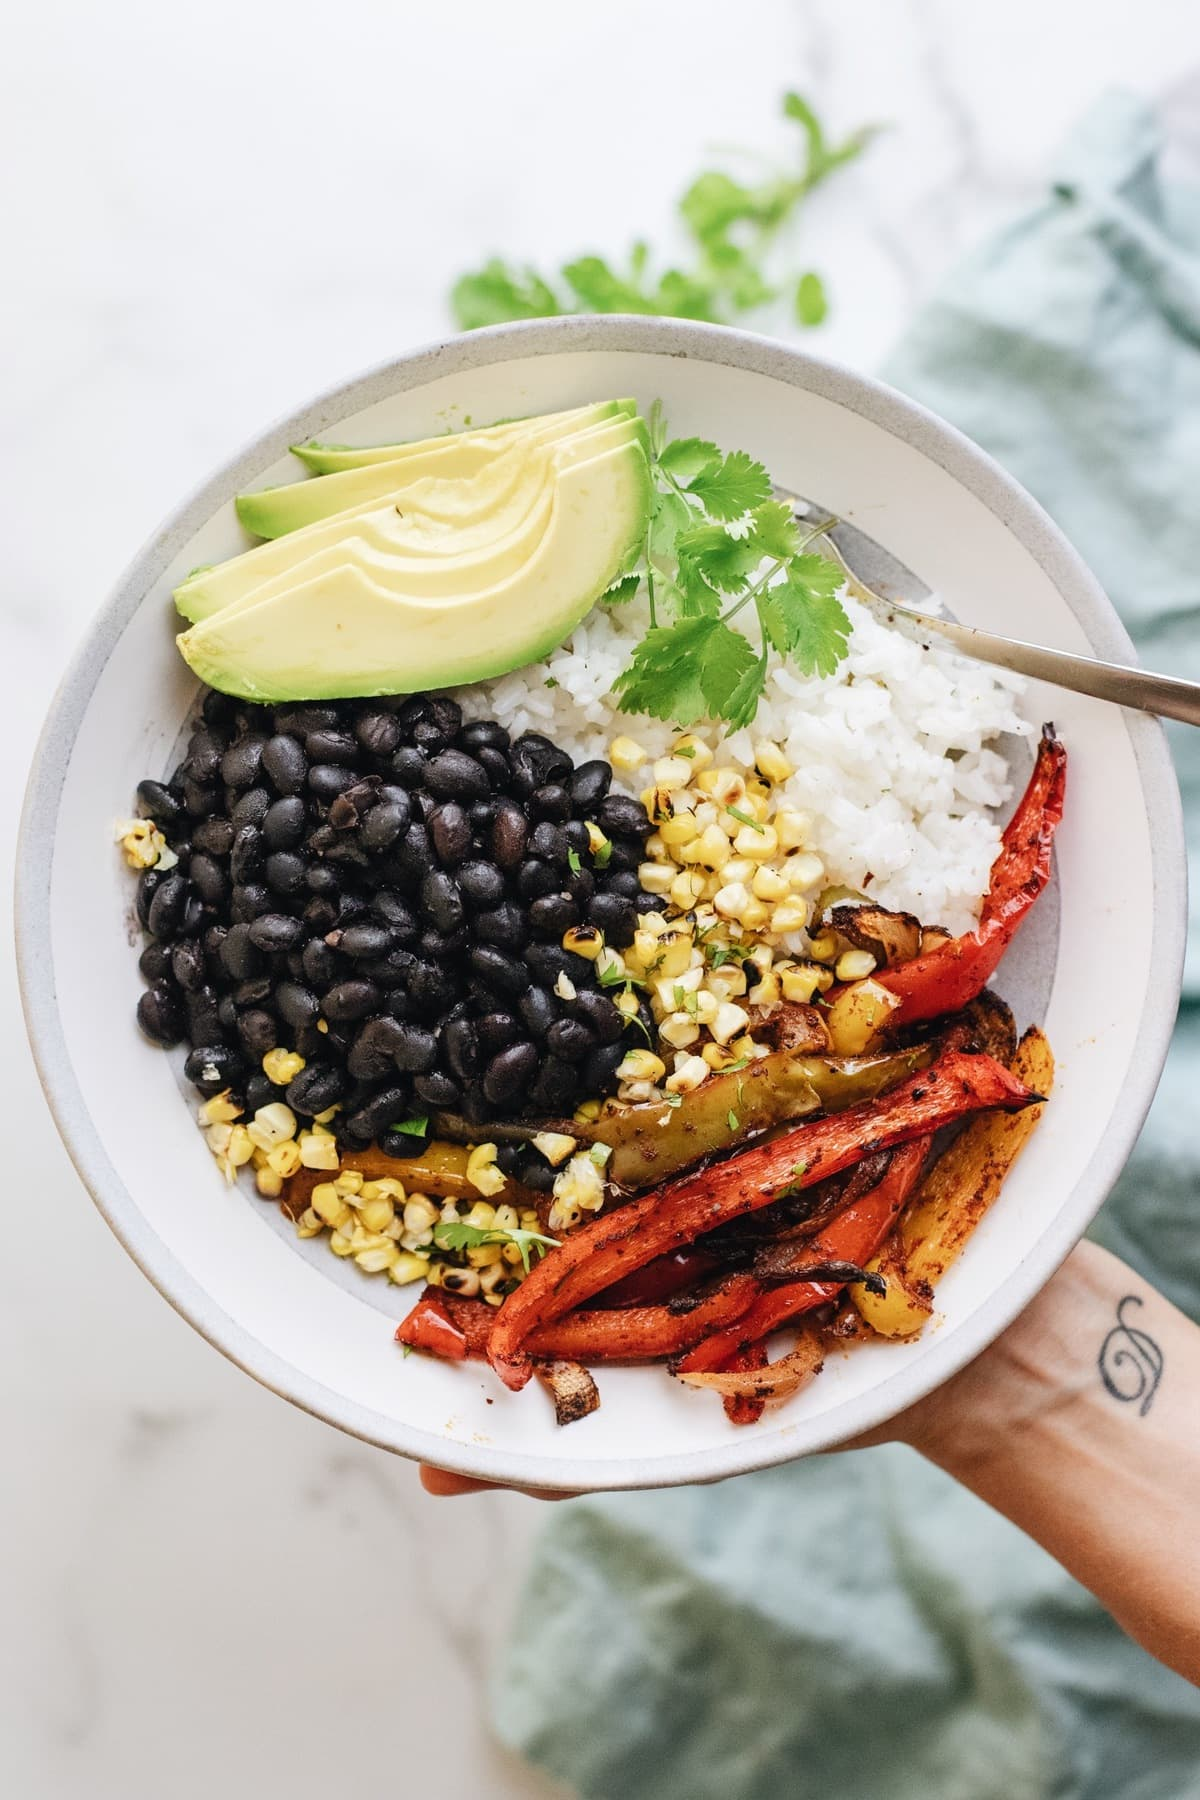 A hand holding a ceramic bowl with black beans, rice, and vegetables.